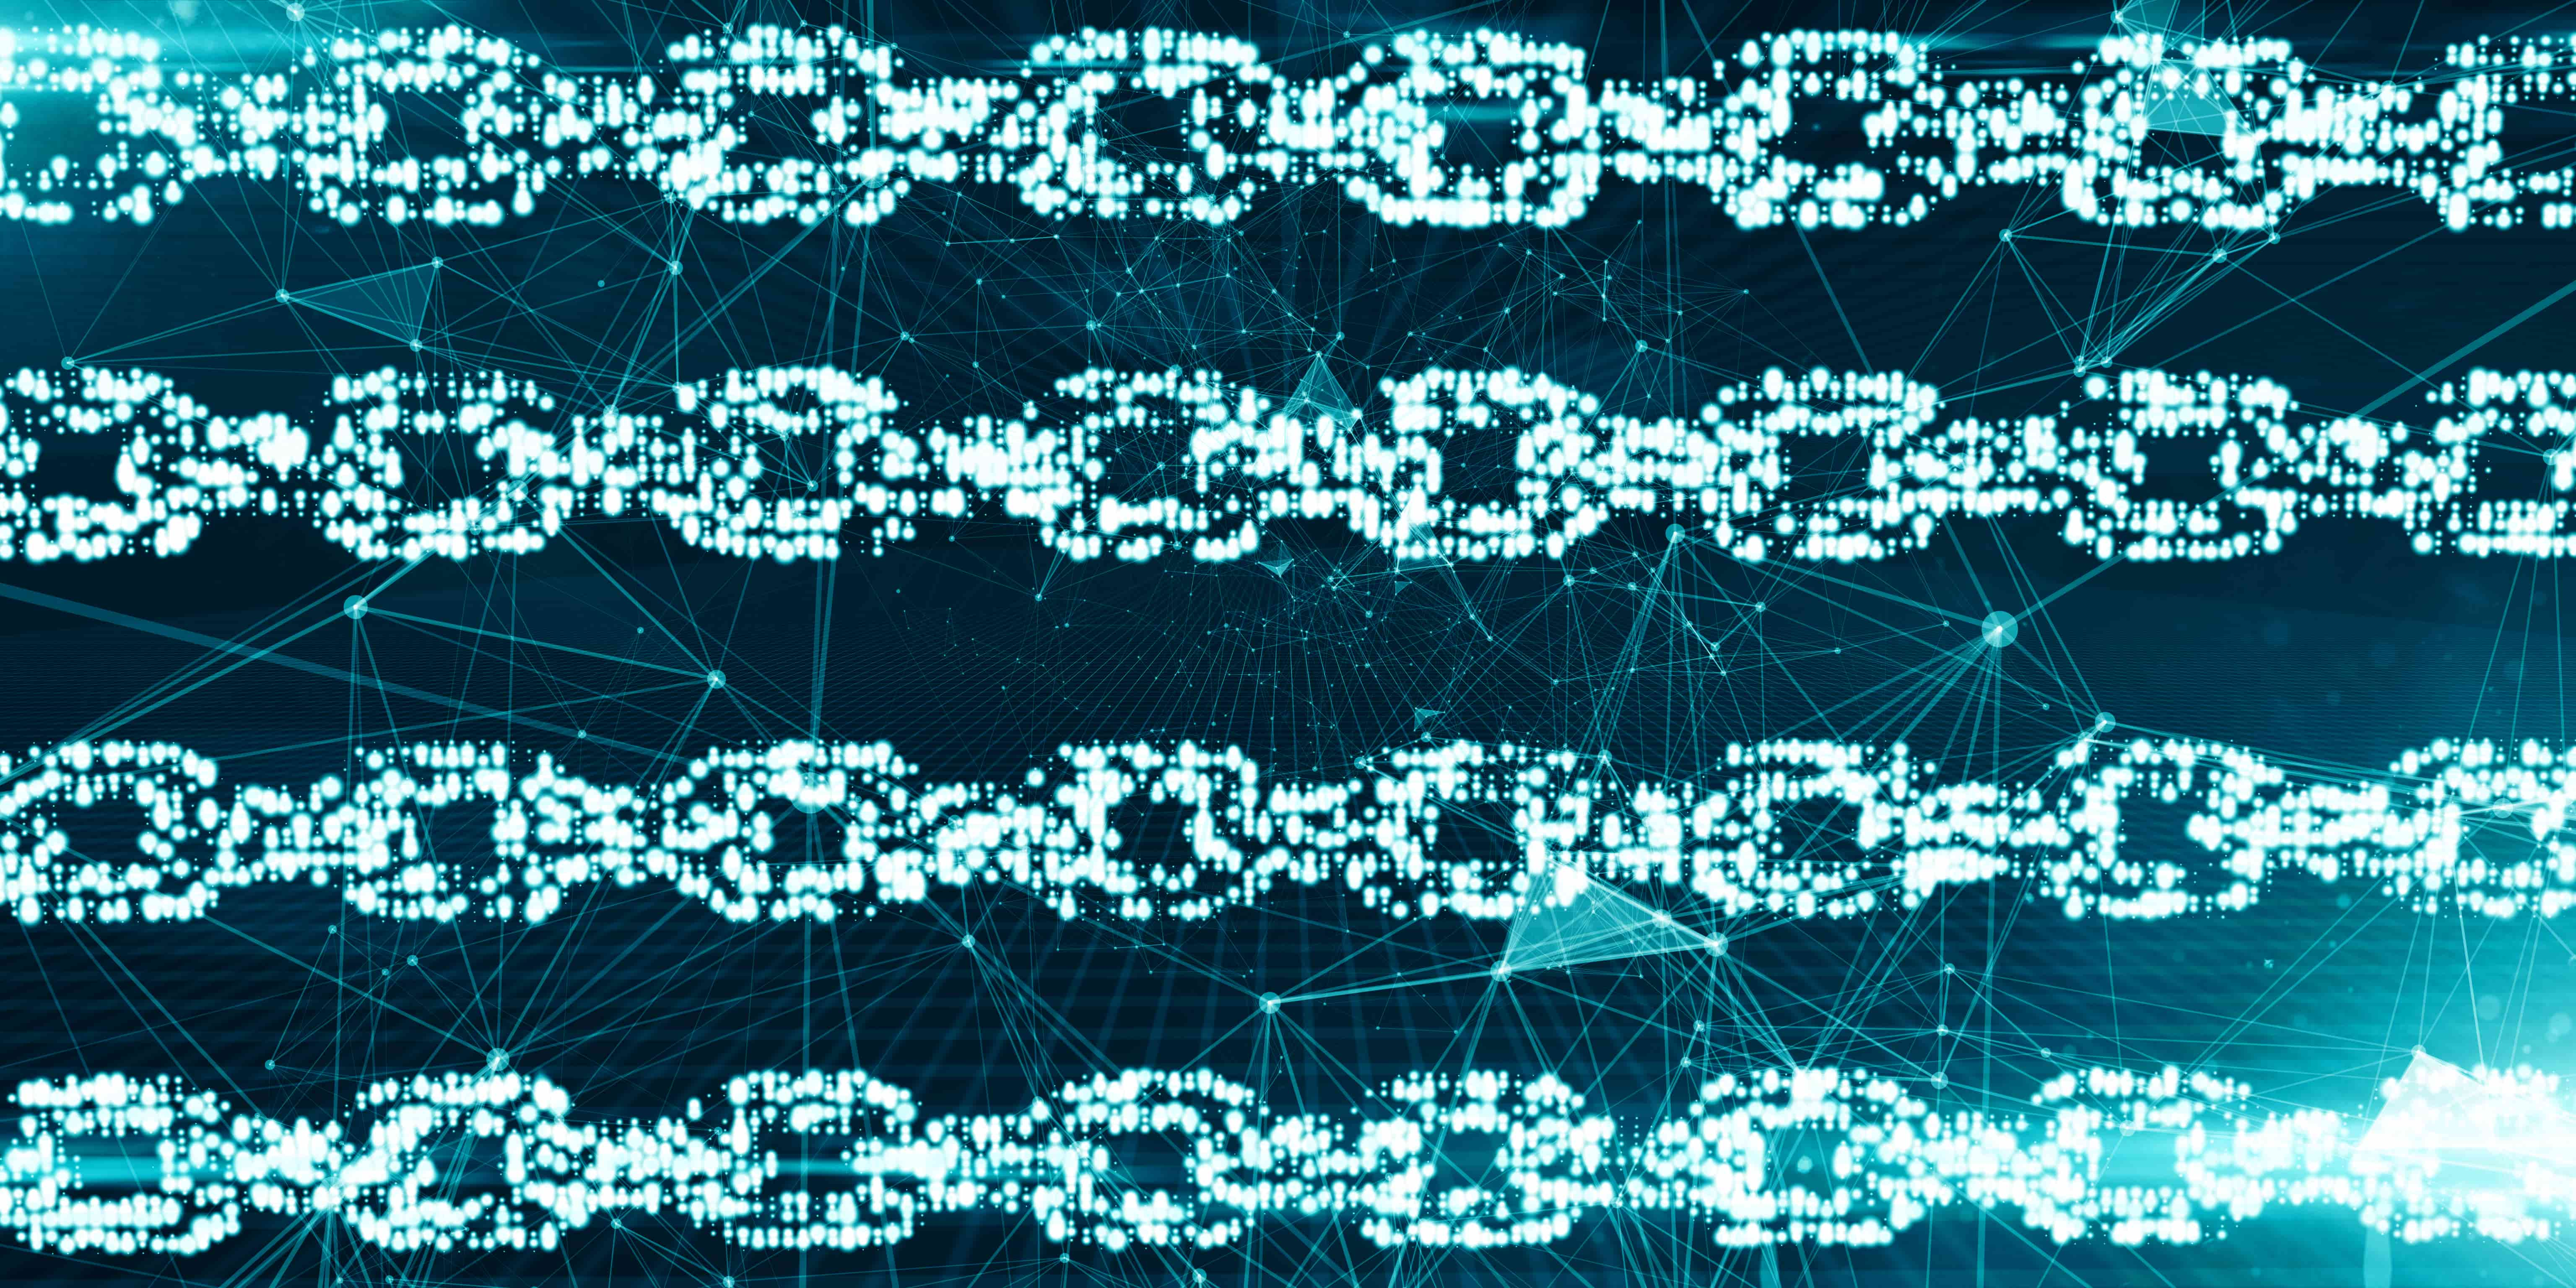 A display picture of chain